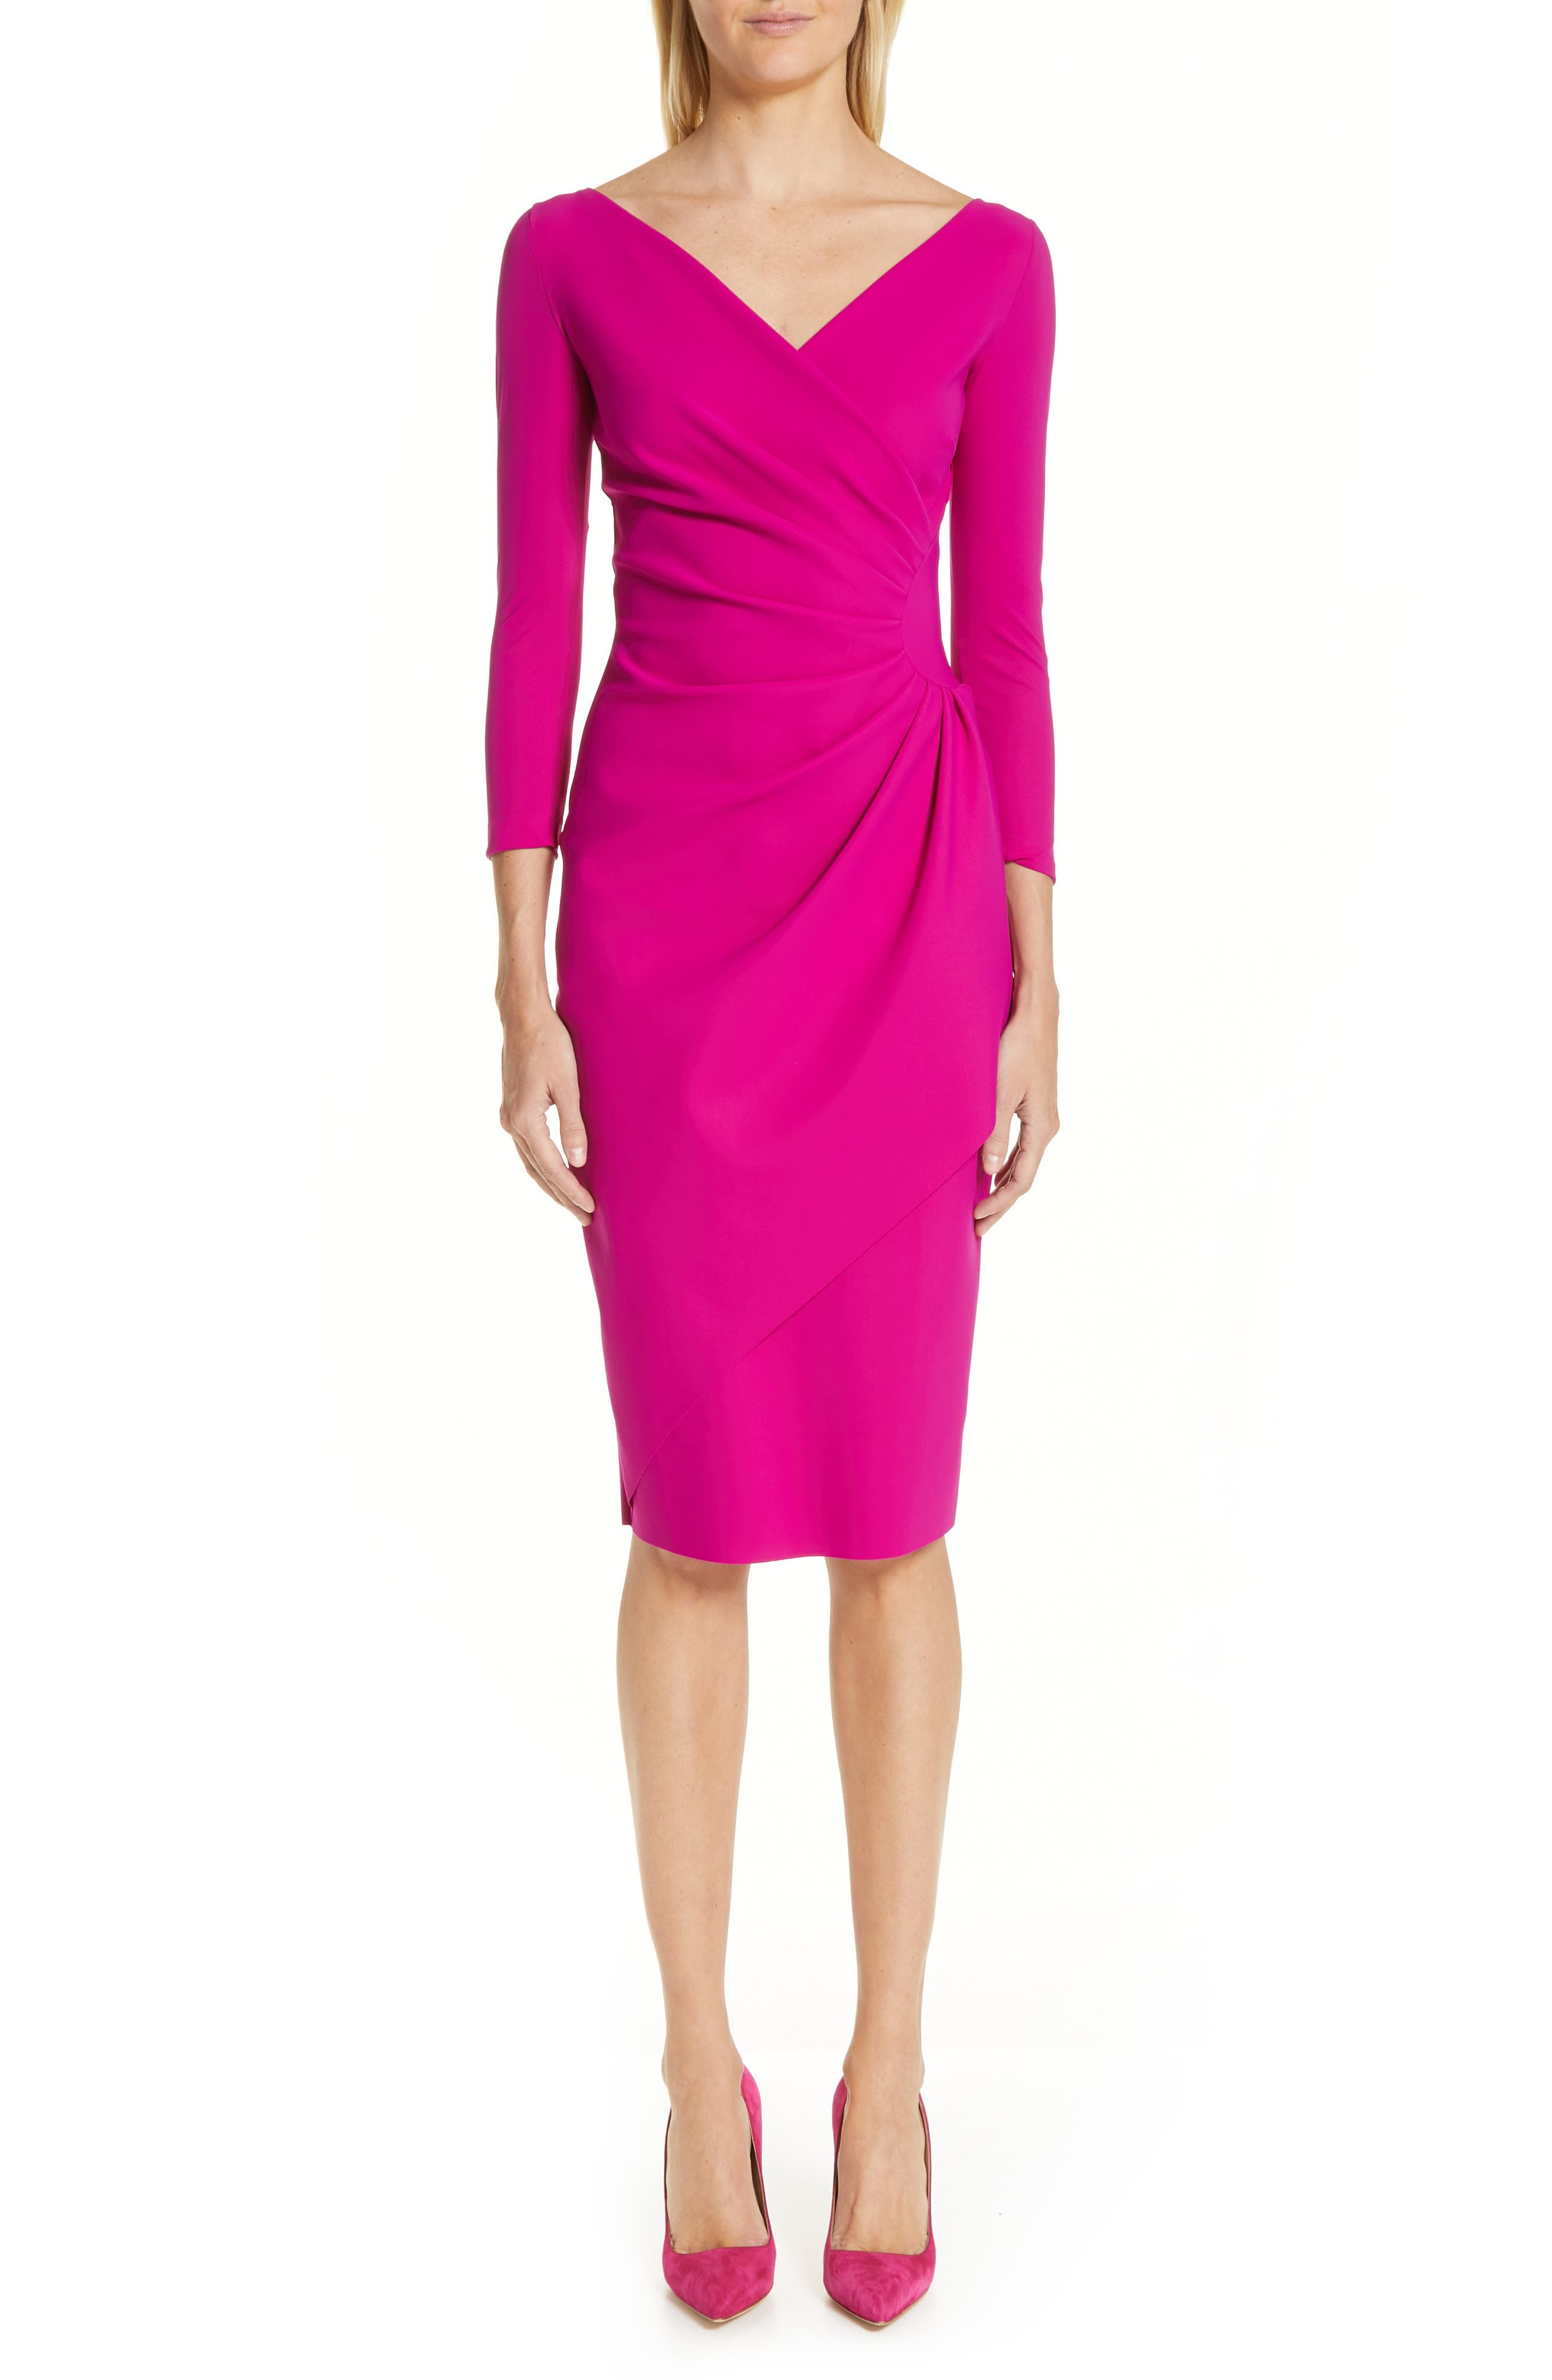 Chiara Boni La Petite Robe Charisse Ruched Long Sleeve Cocktail Dress, 8 IT - Pink